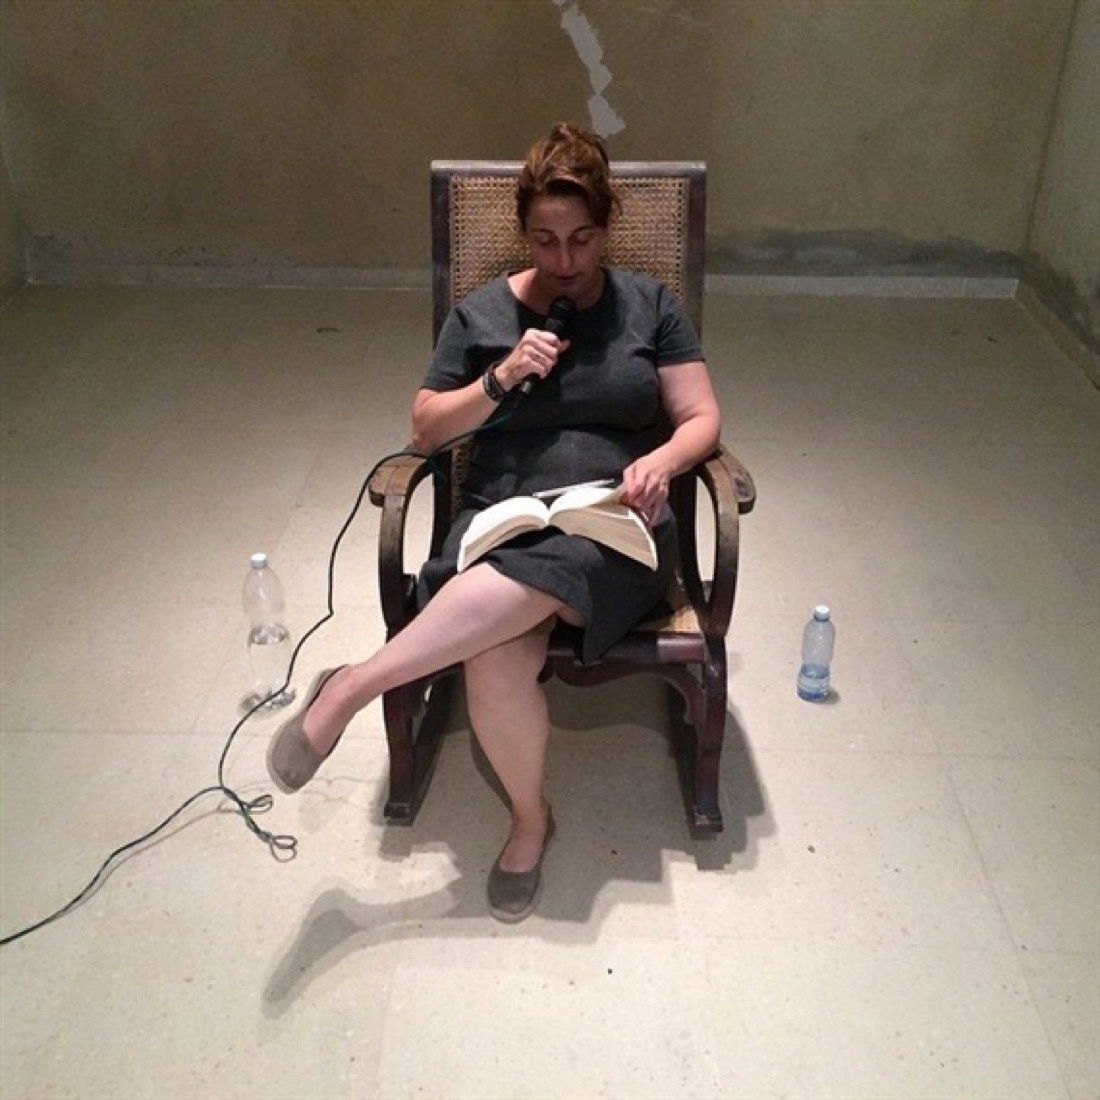 Tania Bruguera, Opening Session of the foundational process of the Hannah Arendt International Institute of Artivism, 2015. Photo by Pablo León de la Barra, courtesy of Studio Bruguera and Yo Tambien Exijo Platform.